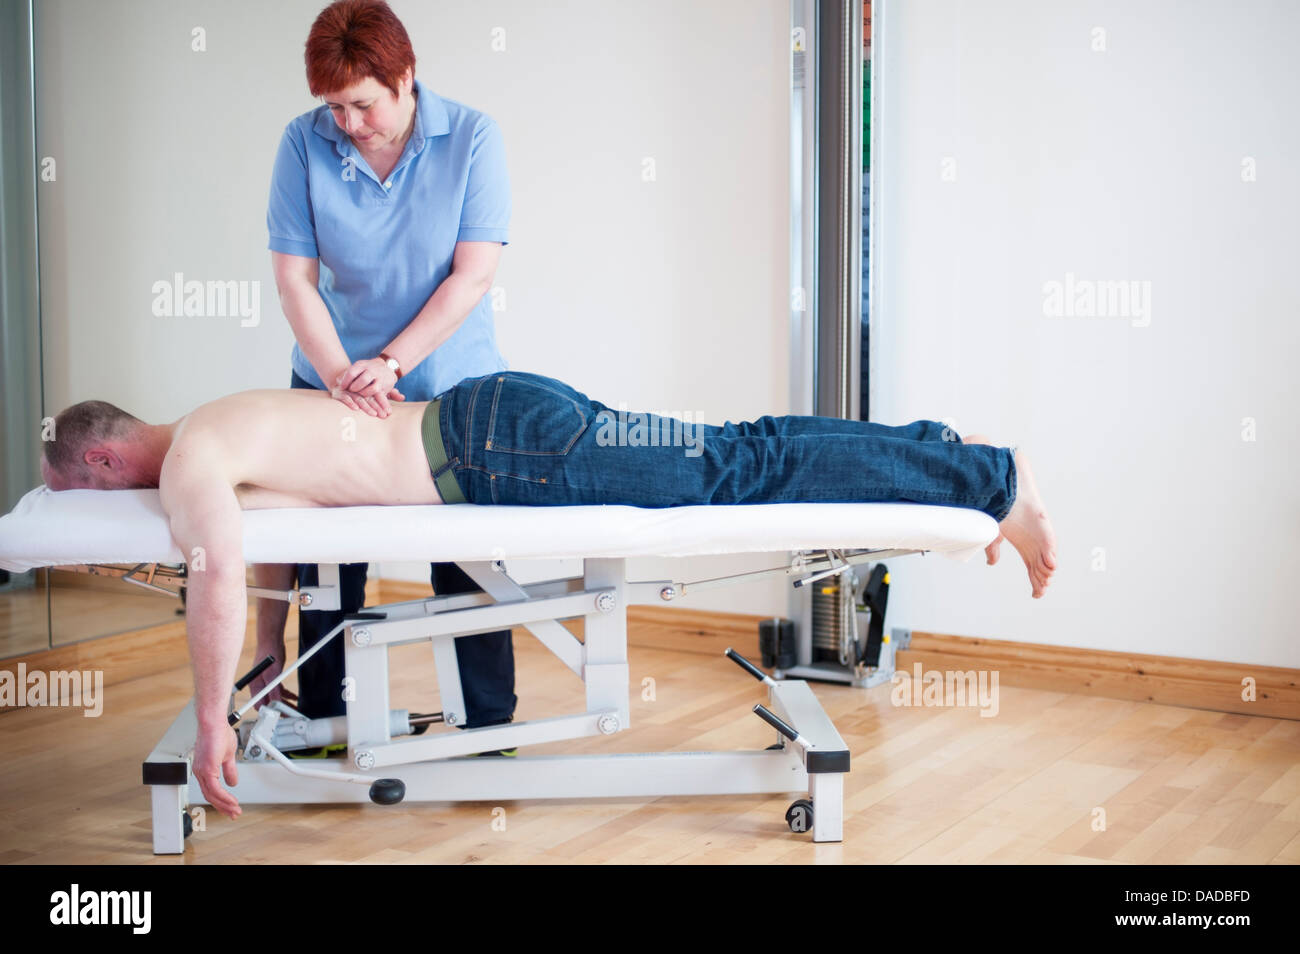 Man lying on front on massage table getting message - Stock Image